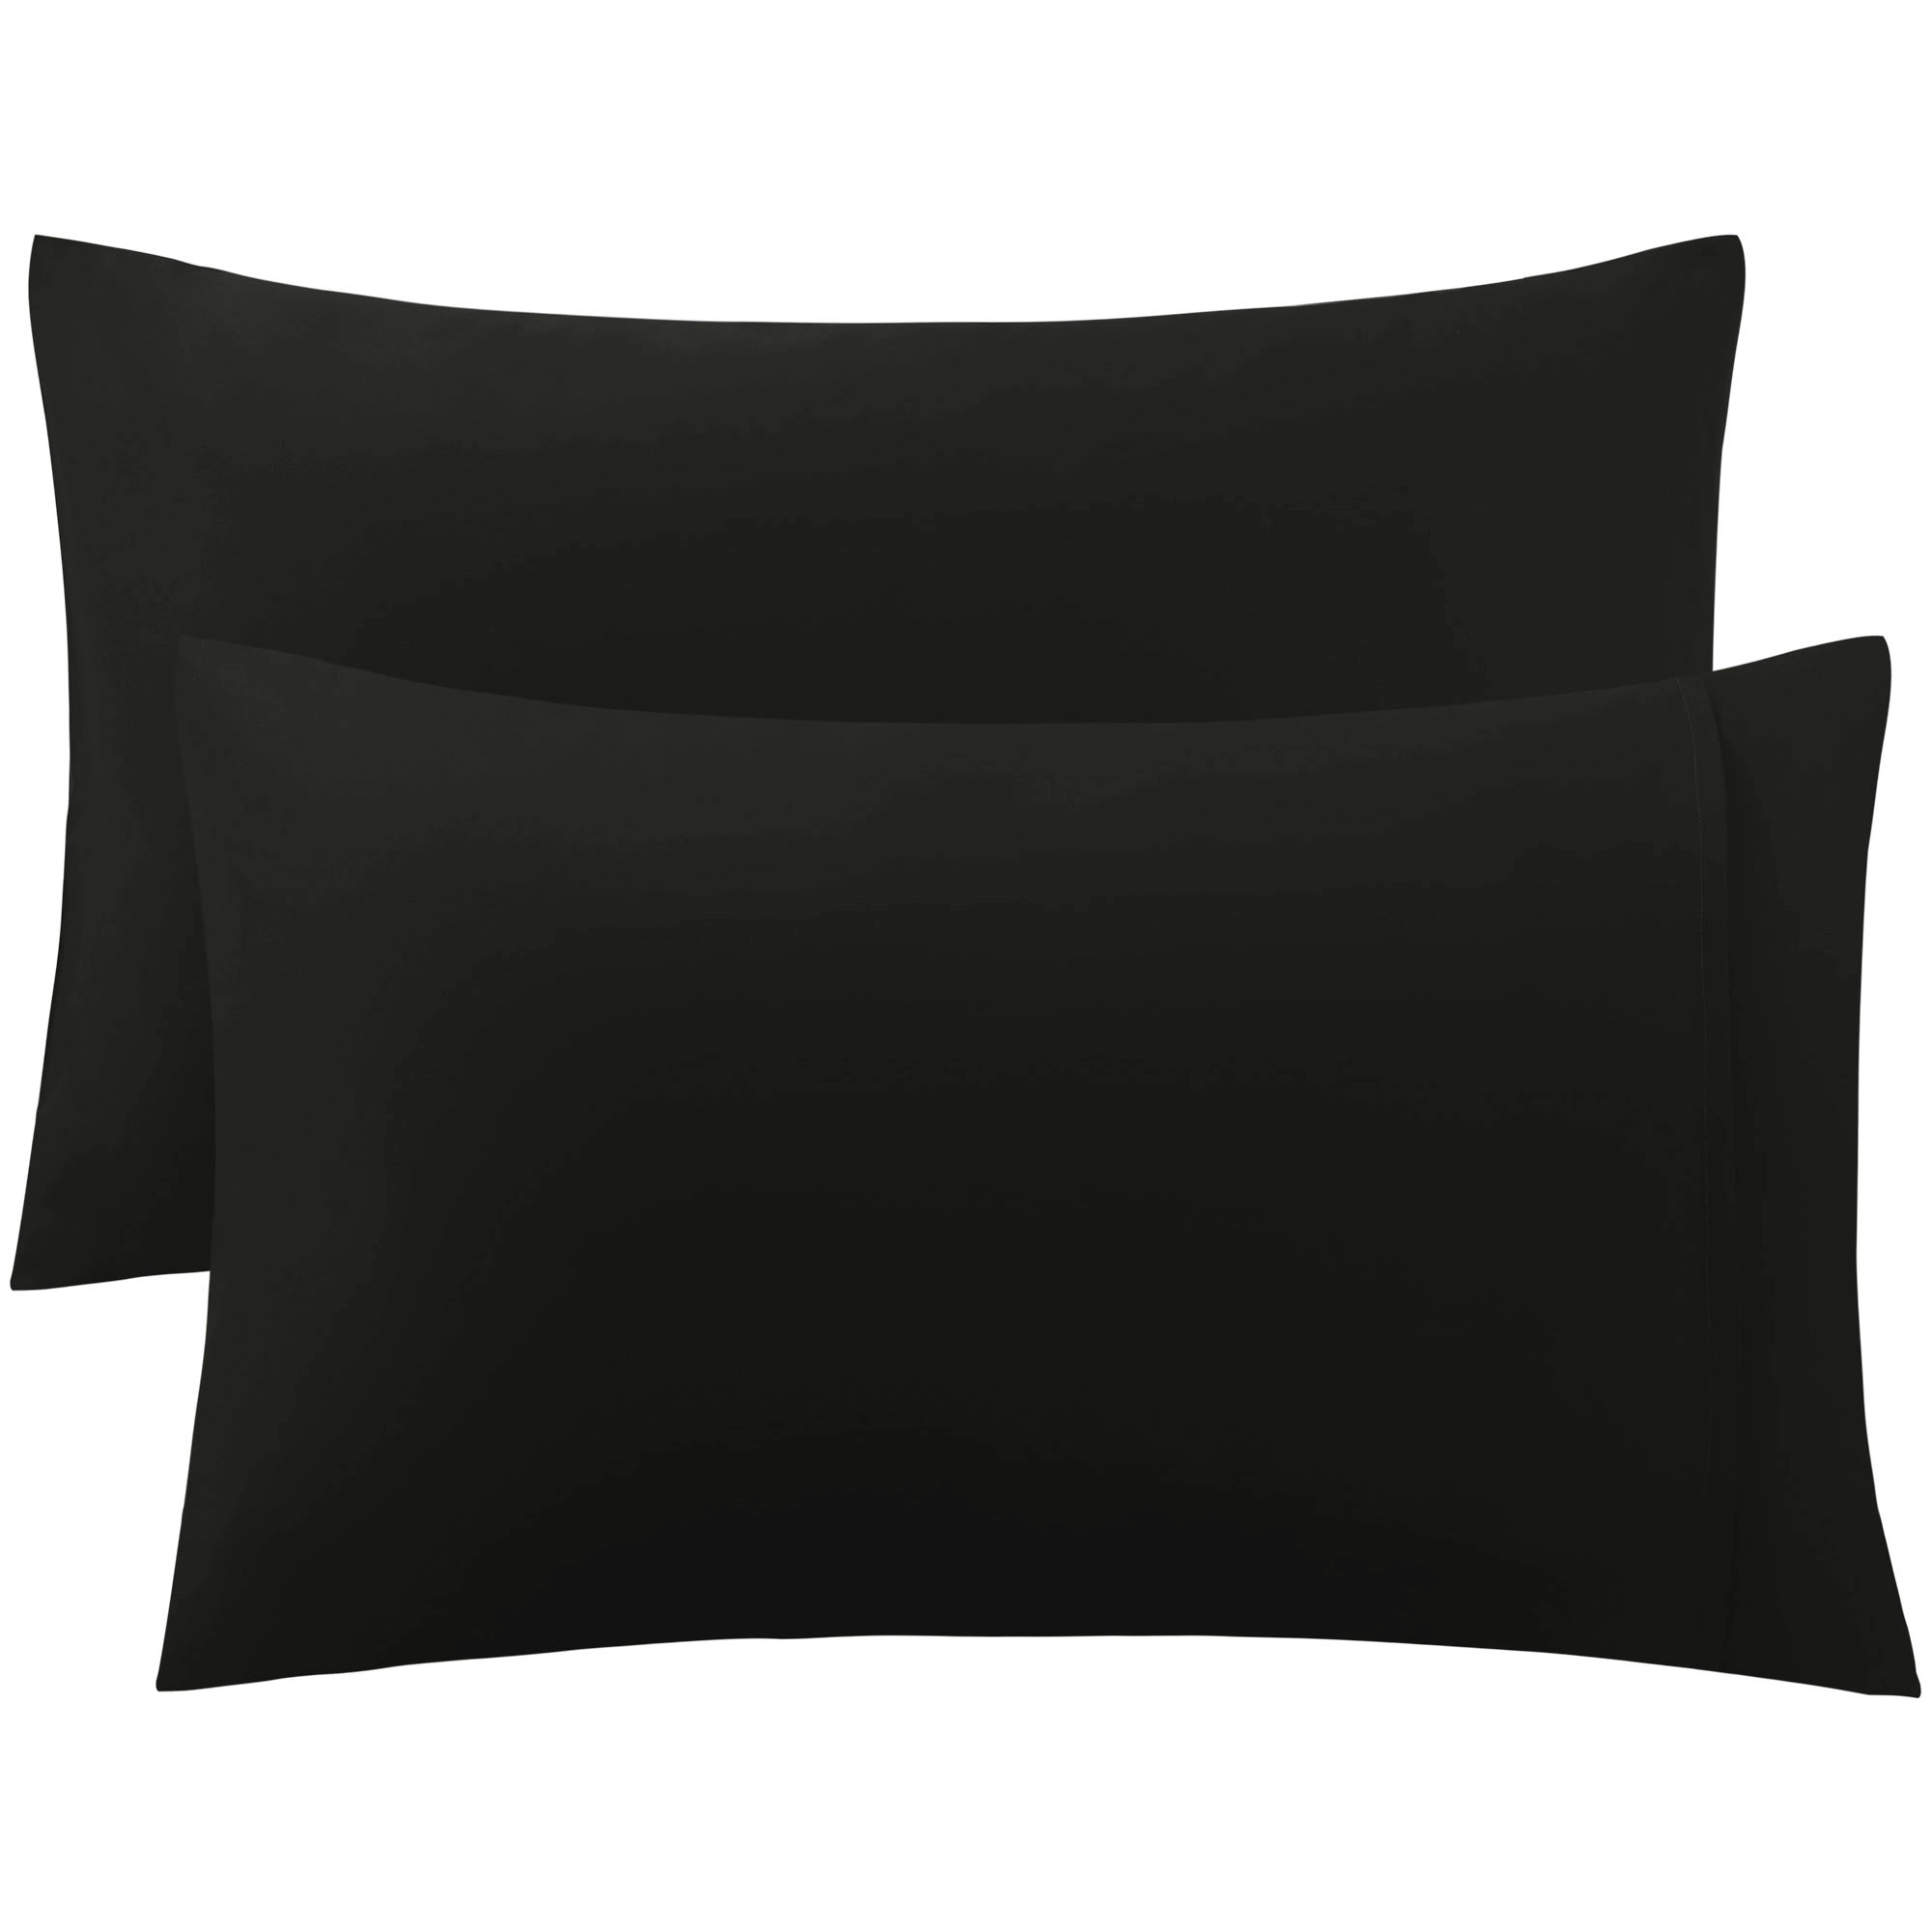 PiccoCasa 300 Thread Count Egyptian Cotton King Size Pillowcases Pillow Cases Covers Set of 2 Black